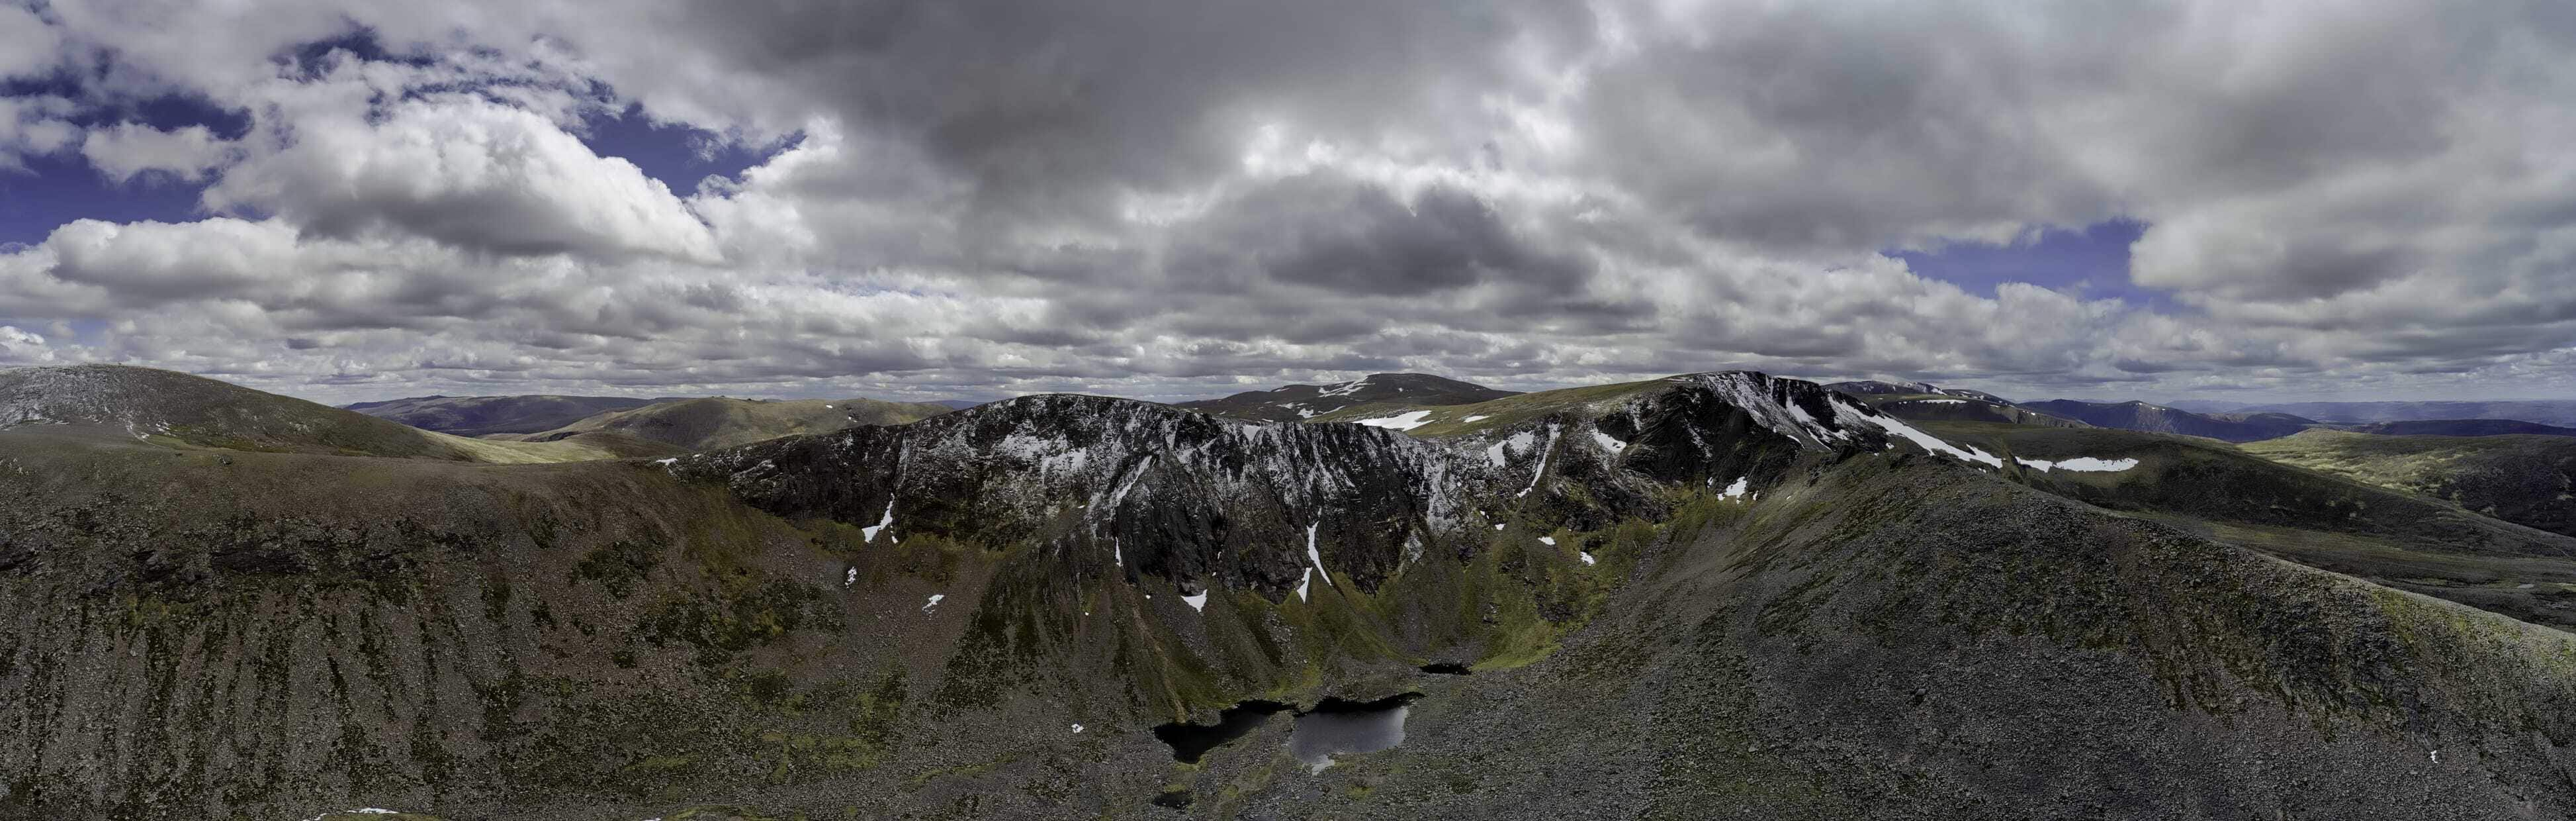 The Northern Corries of the Cairngorms. Scotland